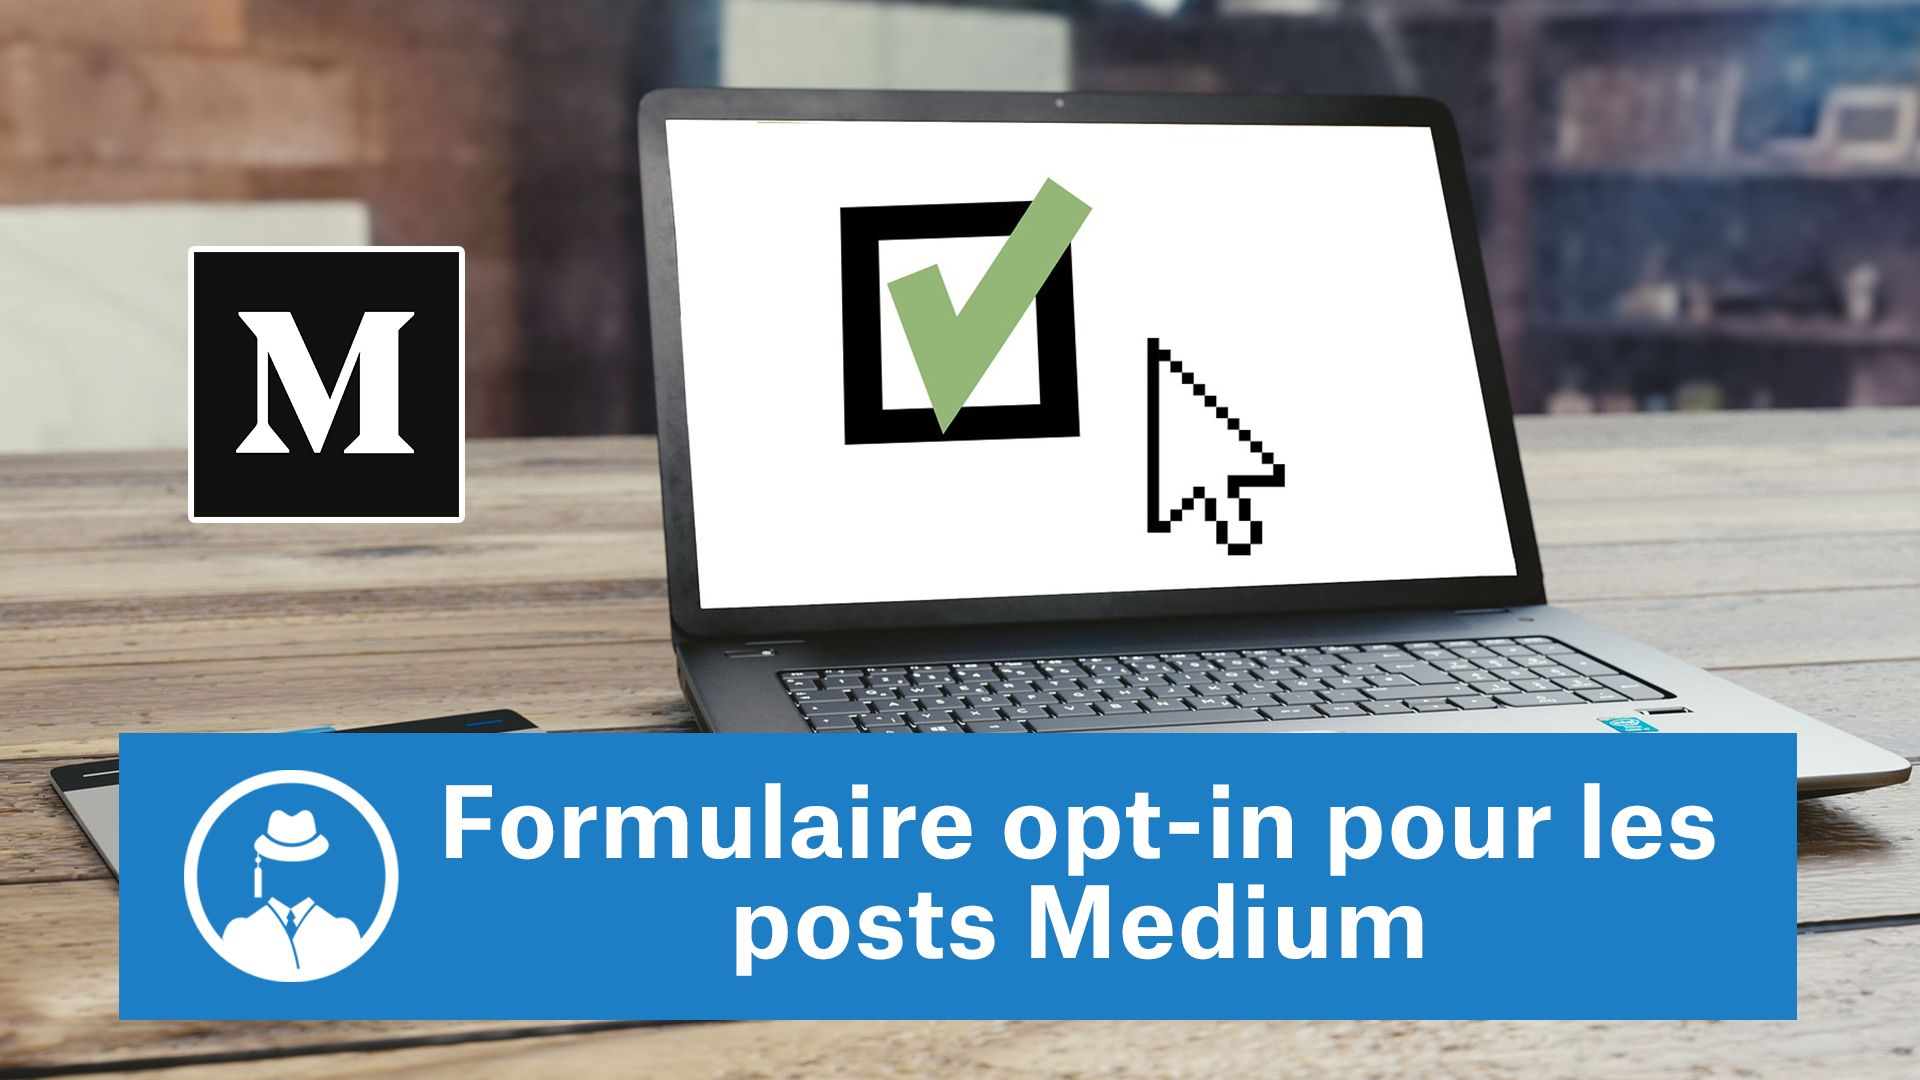 Formulaire opt-in pour les posts Medium #GrowthHacking #WebMarketing #FormationGrowthHacking #CentreDeFormationFrance #TunnelAARRR #AARRR #SocialMedia #CommunityManagement #SEO #MarketingDigital #SiteWeb